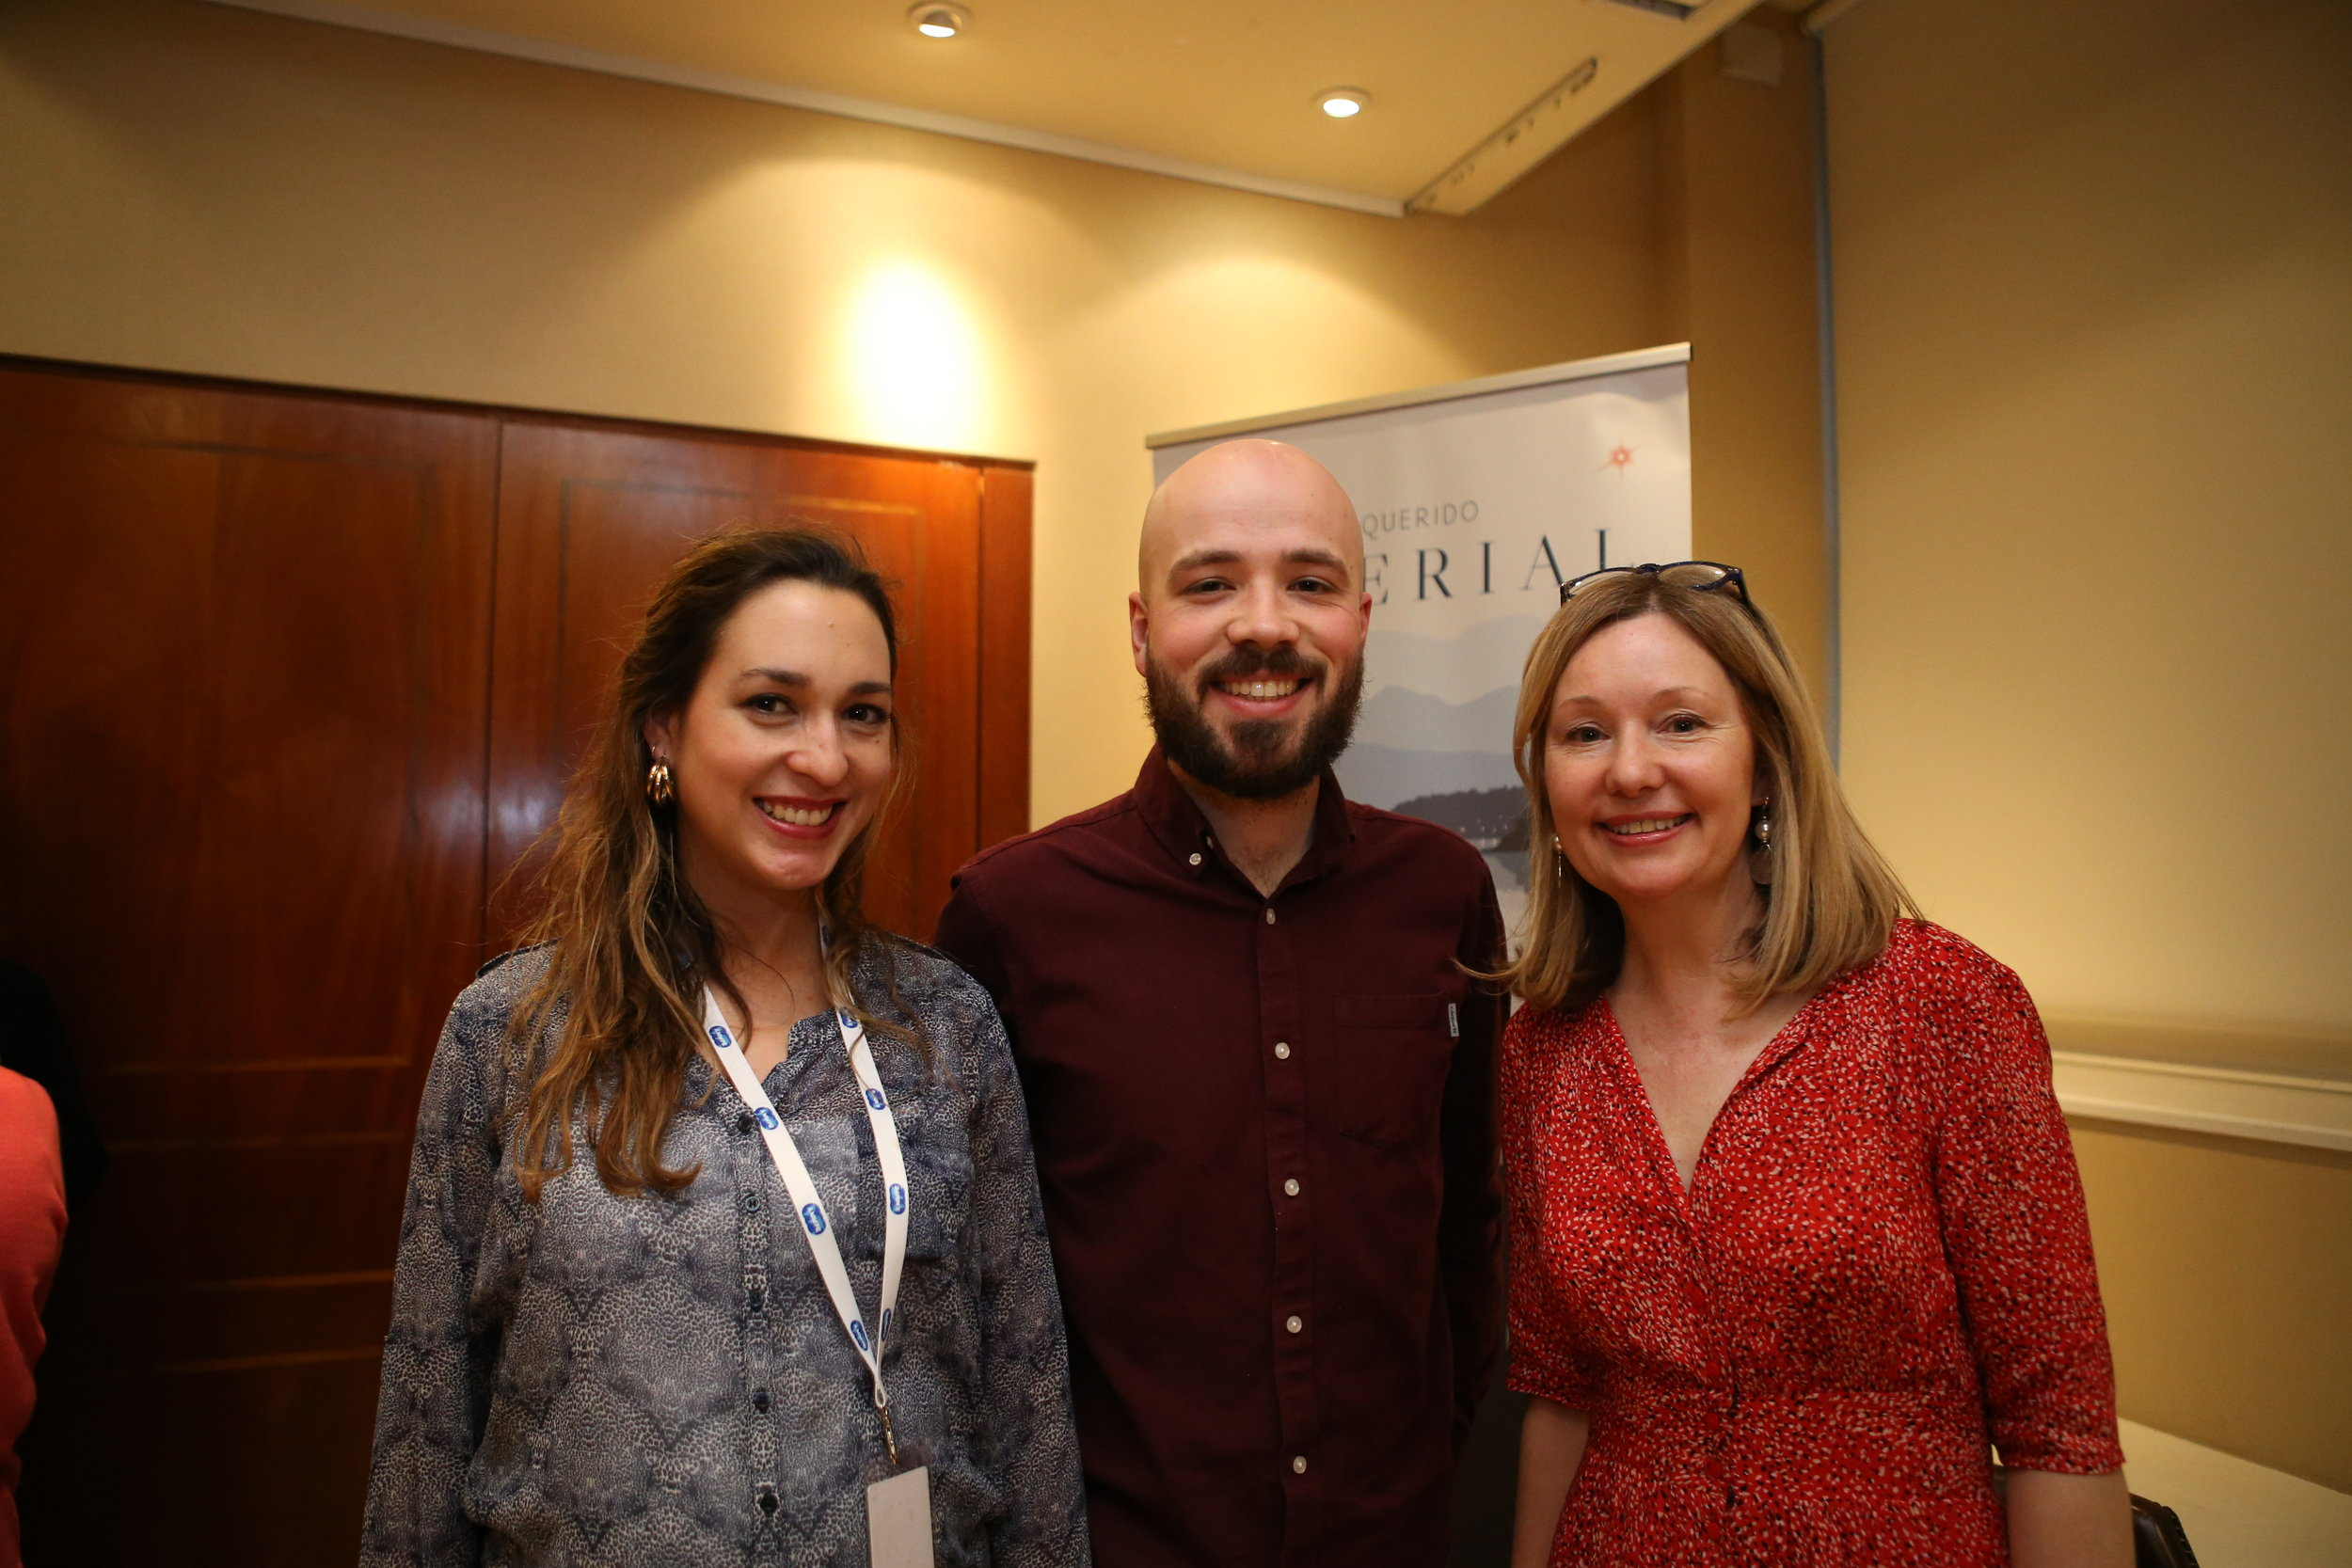 With Catalina Herrera Acuña, Cultural Affairs and Press Attaché for the Embassy of Chile, and Steffan Glynn, the cover designer for 'Mi Querido Imperial'.